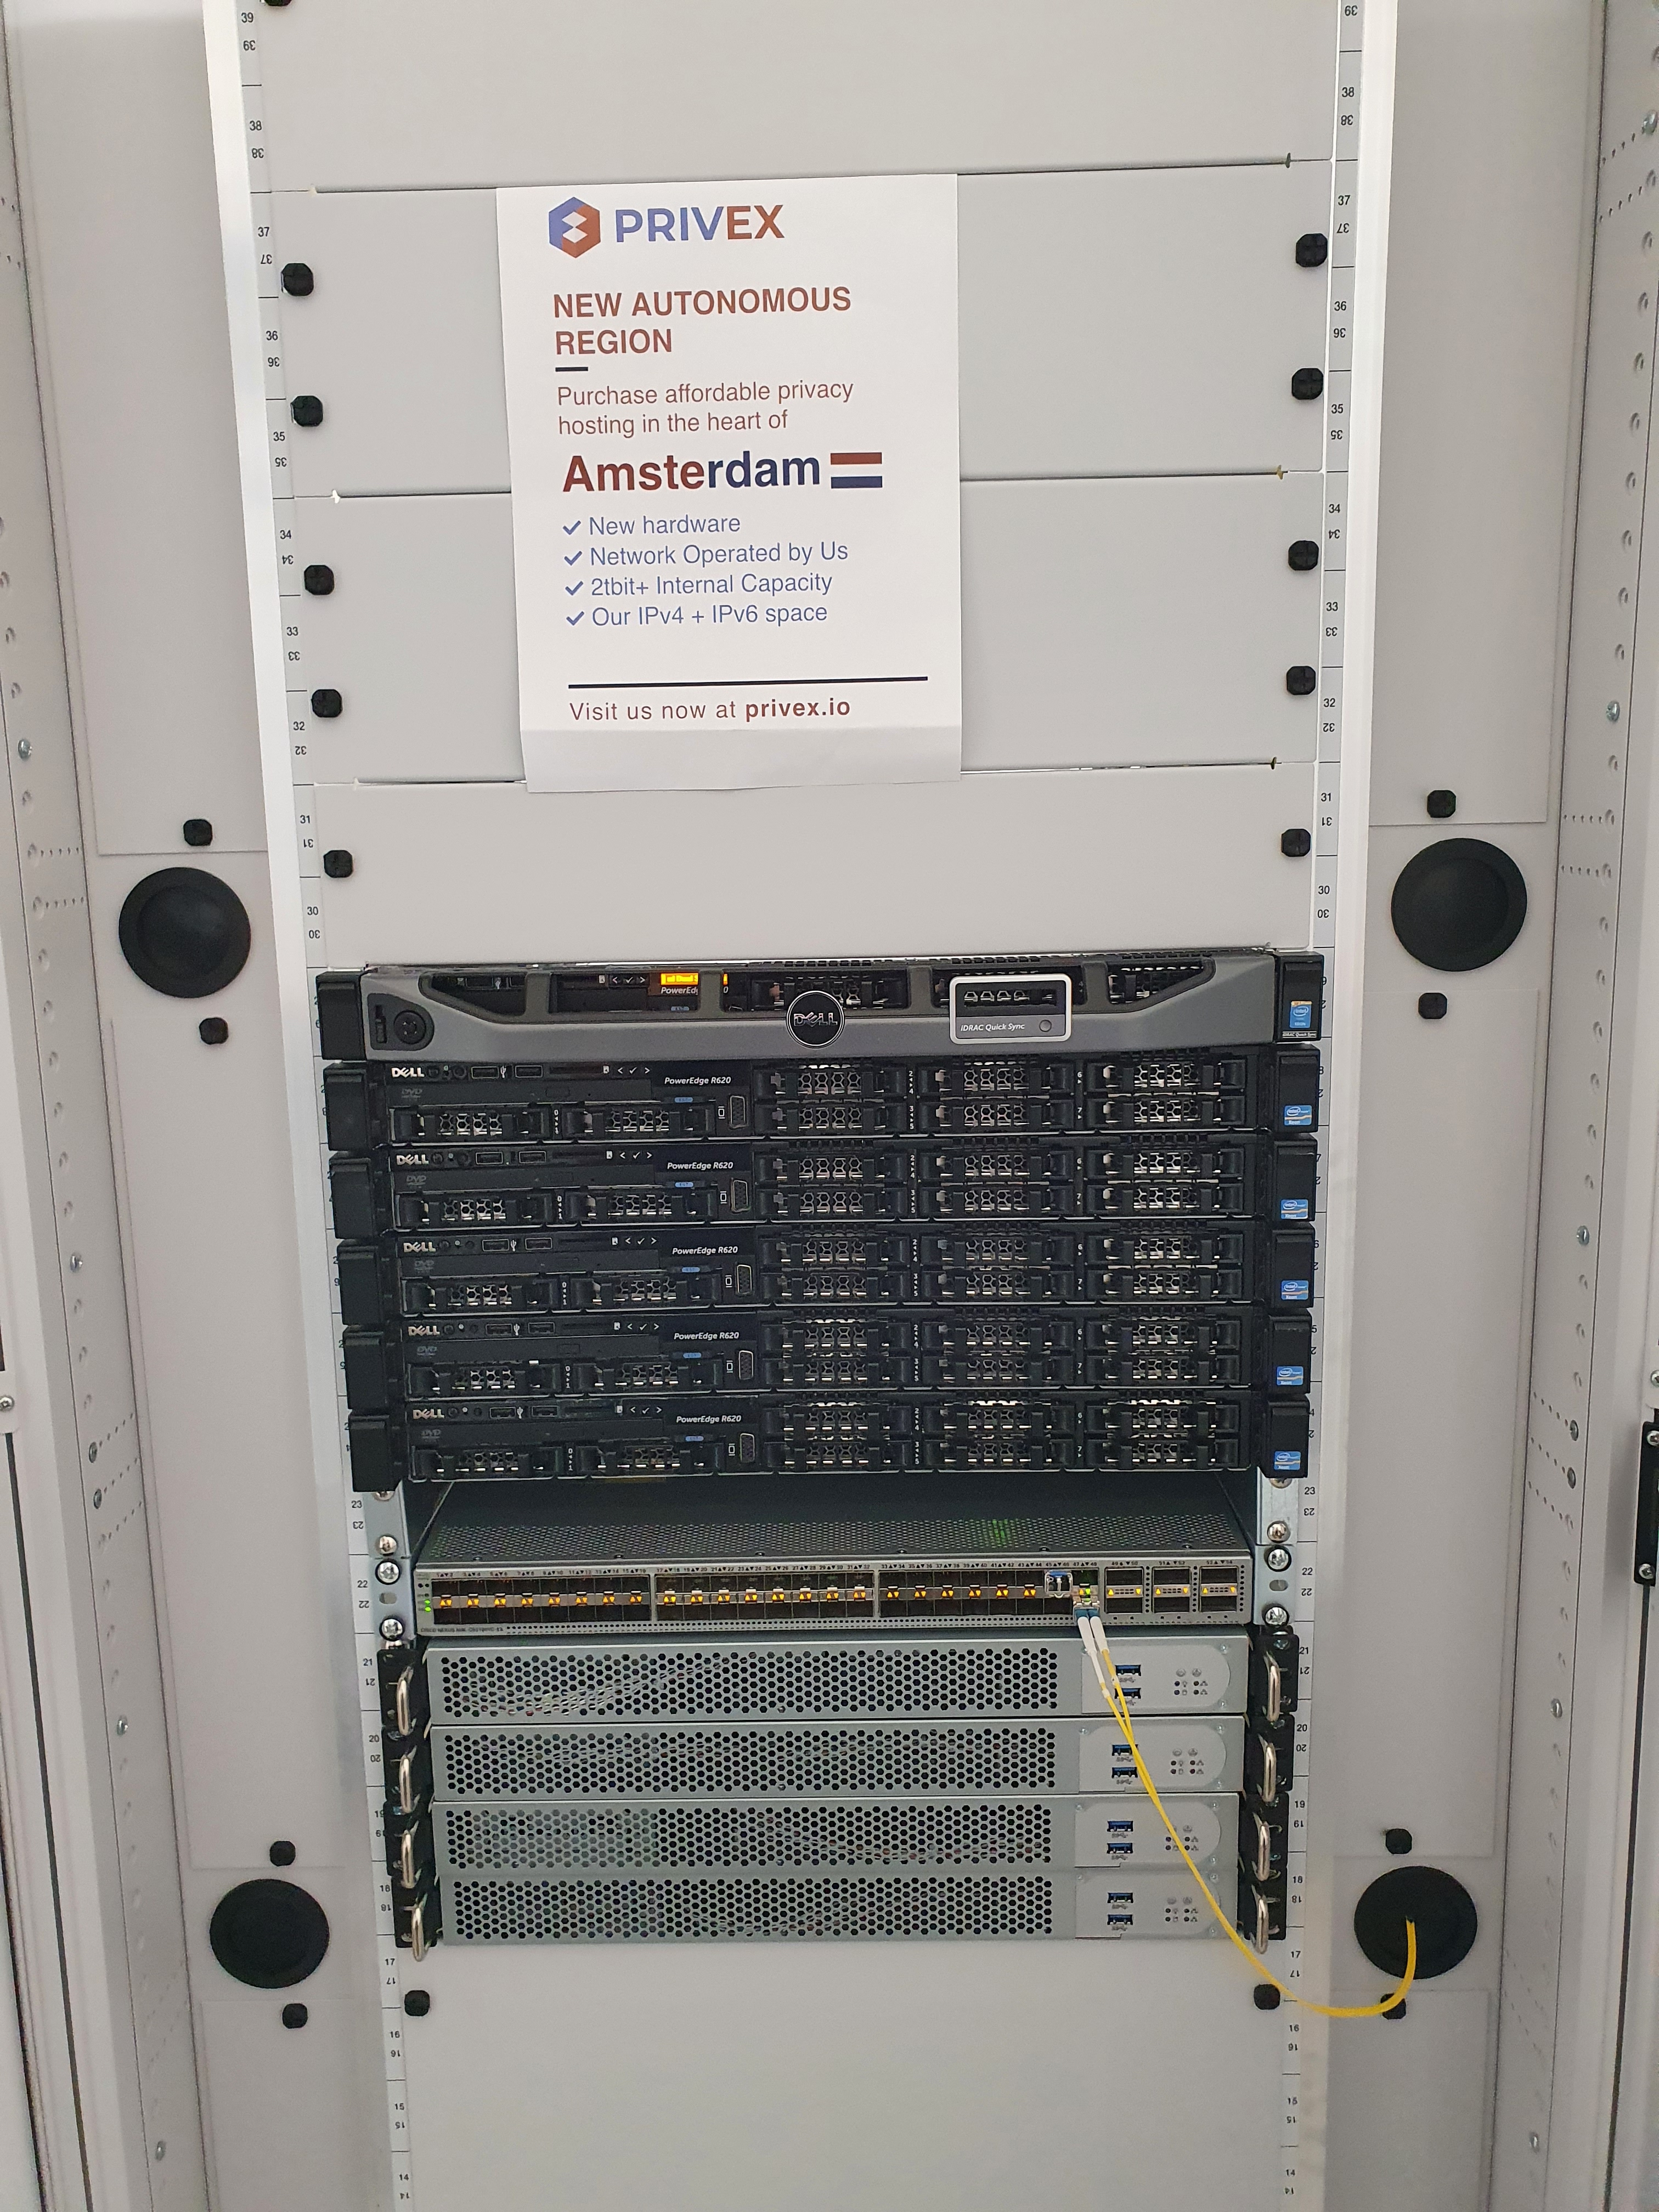 Front Photo of Privex's server rack in Amsterdam, Netherlands - 27 July 2021